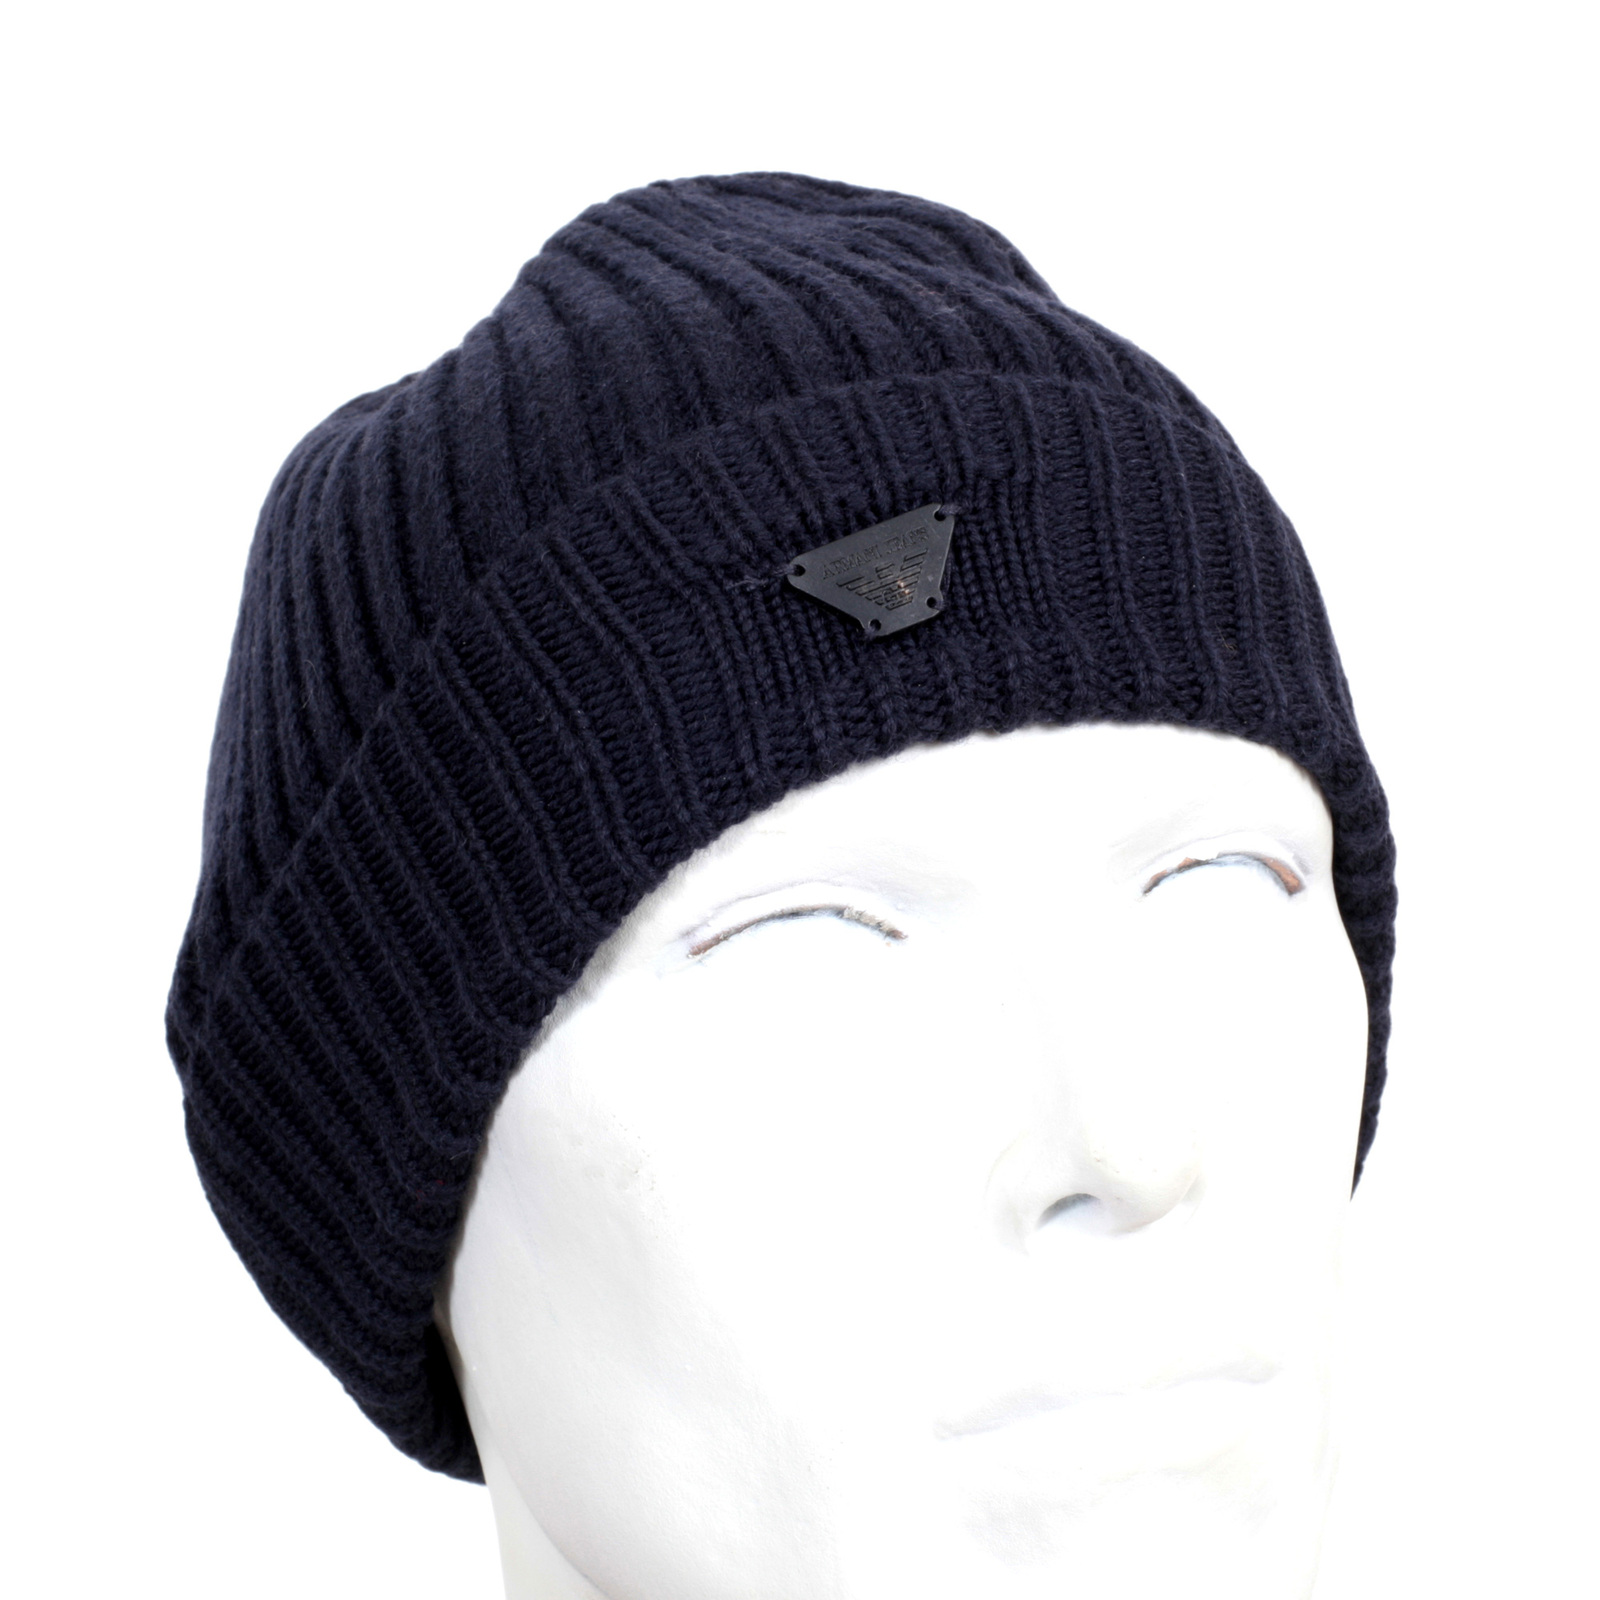 Cool Beanie Hat Accessories for Men by Armani Jeans 36882709d62